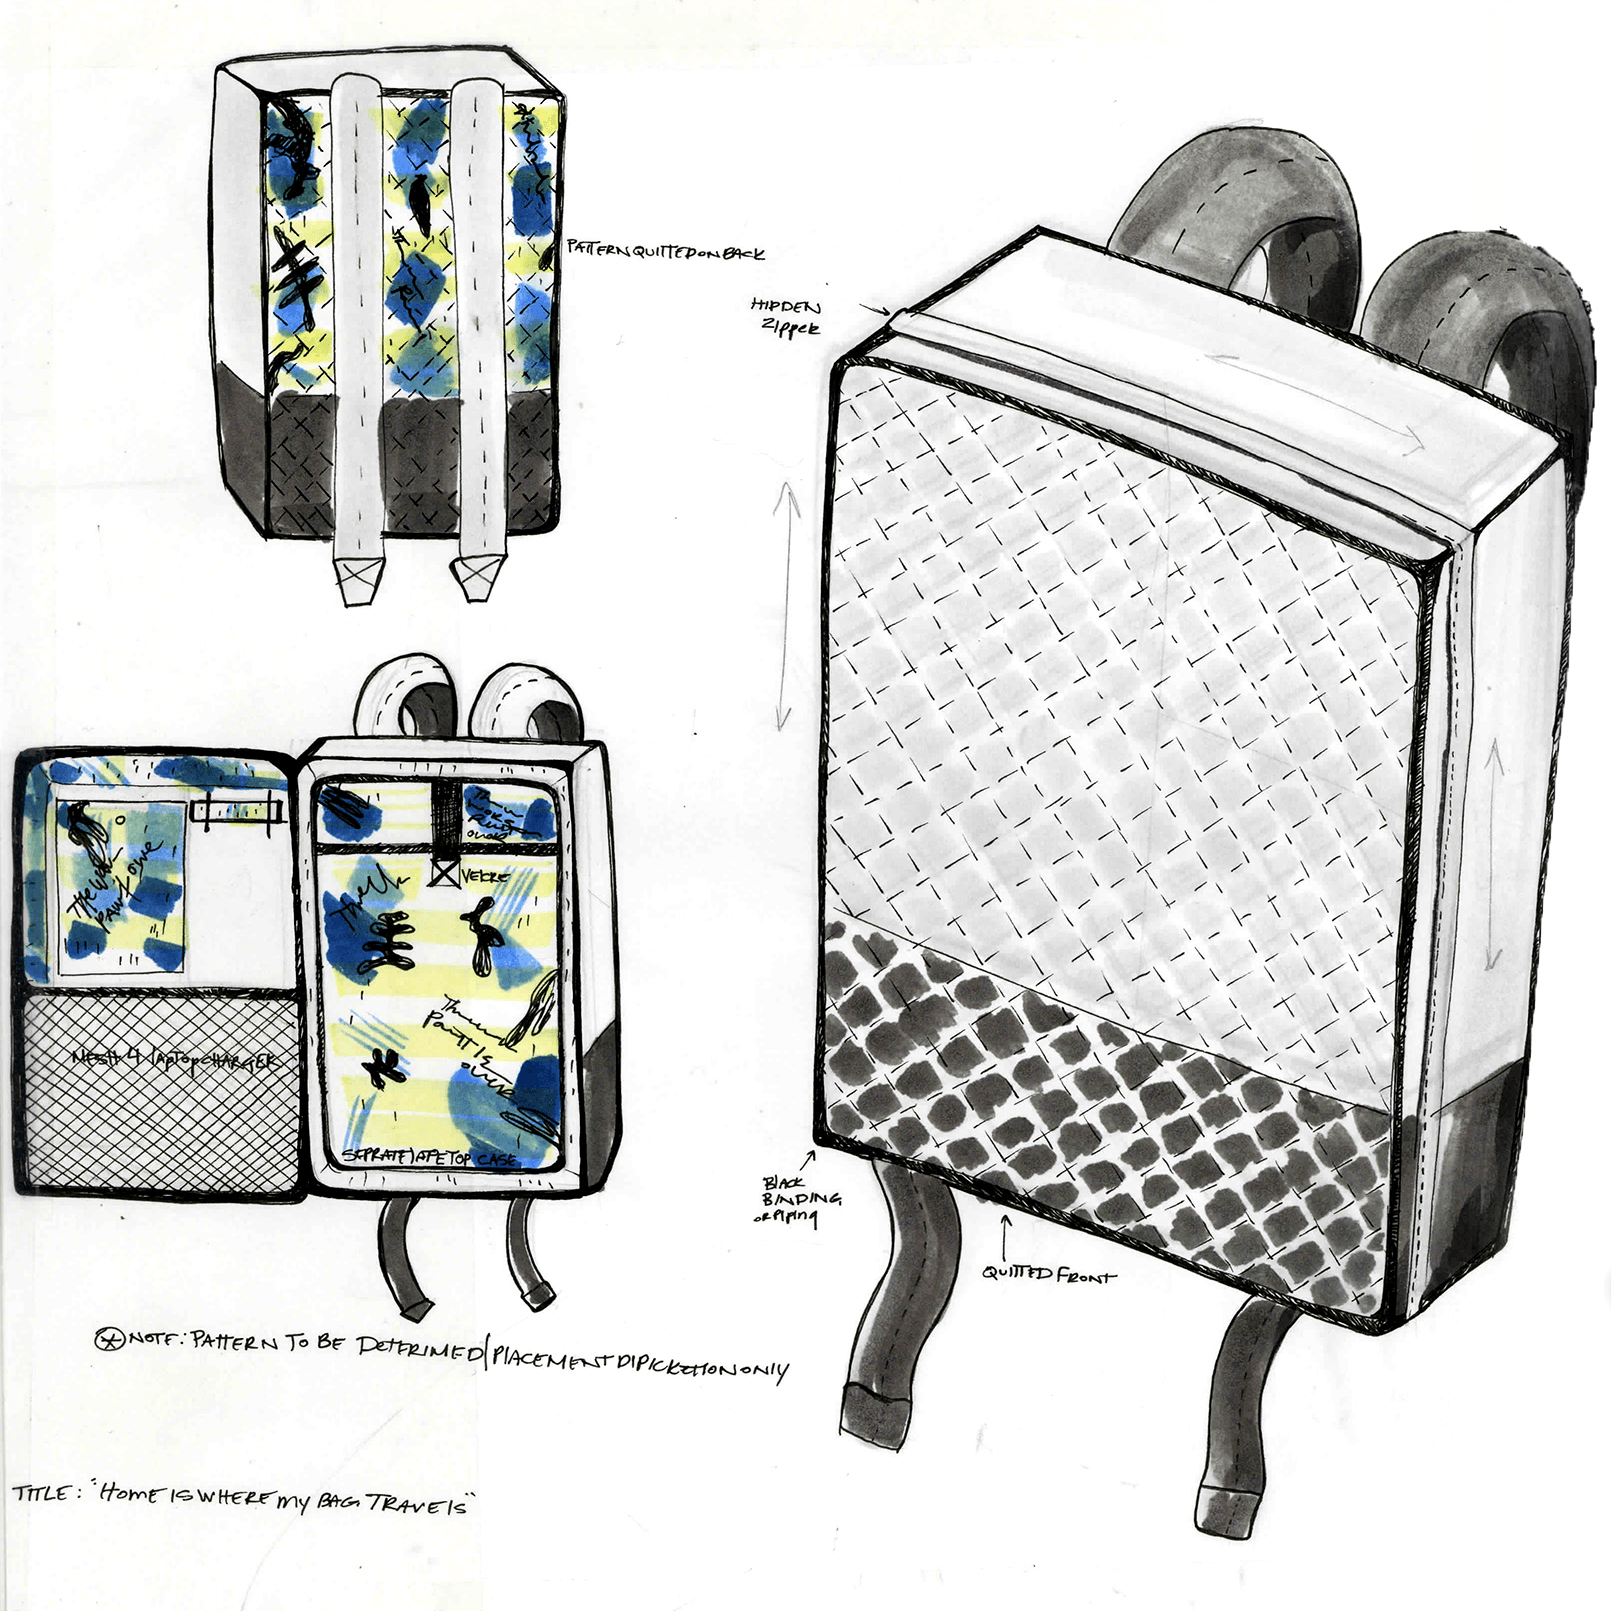 Final Sketch. Because of time, I was instructed to scratch the left hand internal organizers.